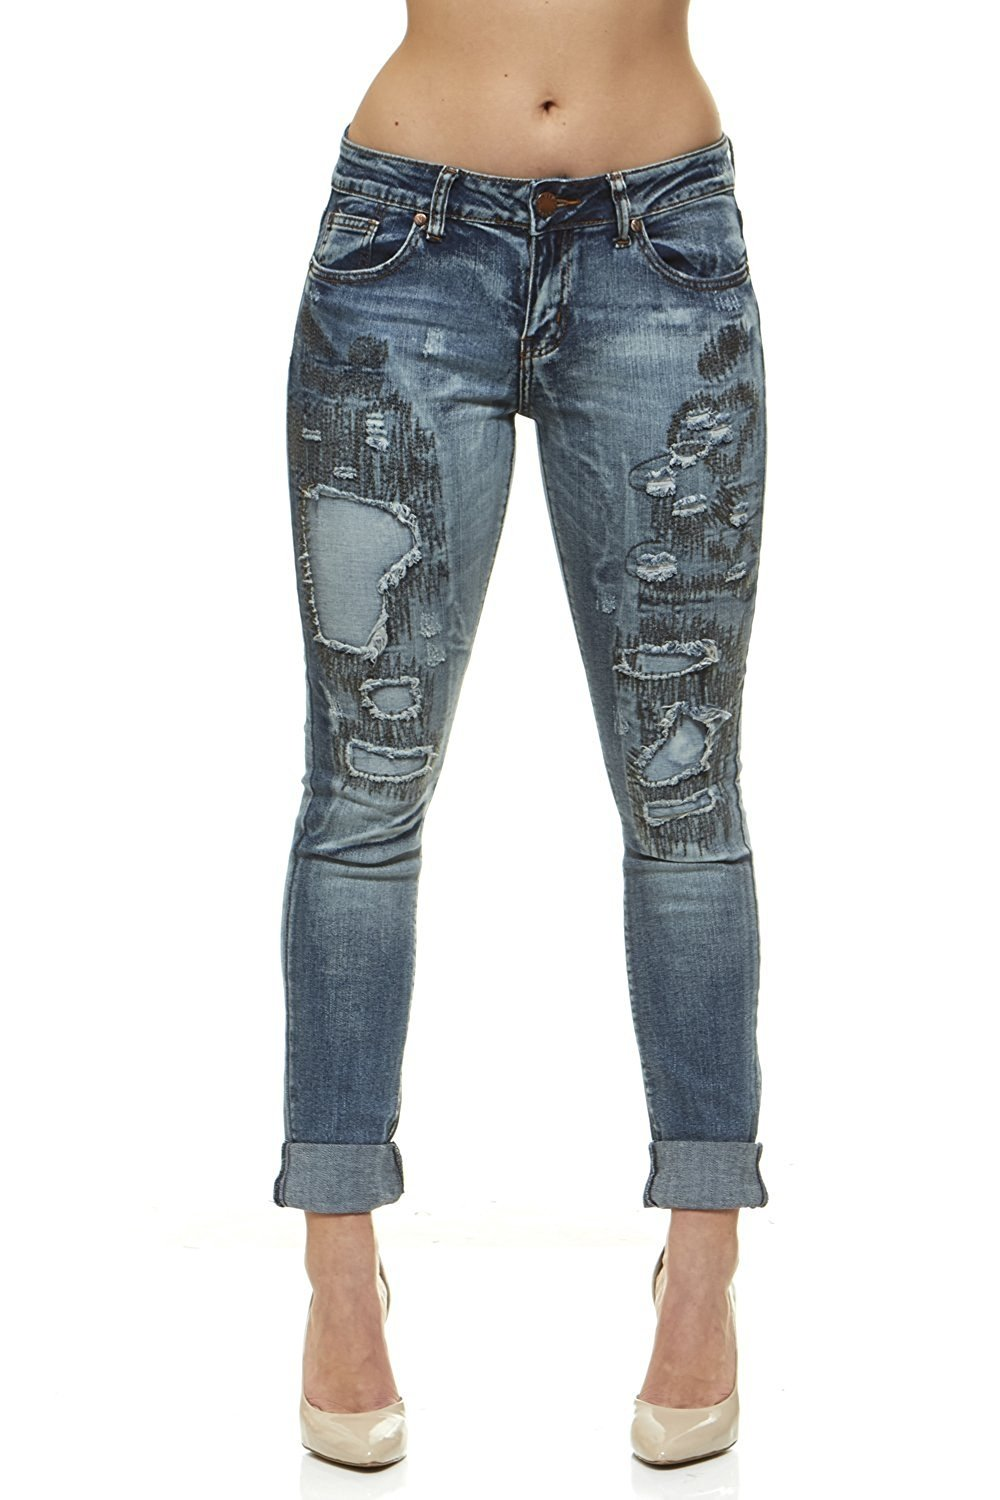 V.I.P.JEANS Distressed Patched and Repaired Skinny Stretch Ripped Jeans For Women Cuffed Junior and Plus Sizes